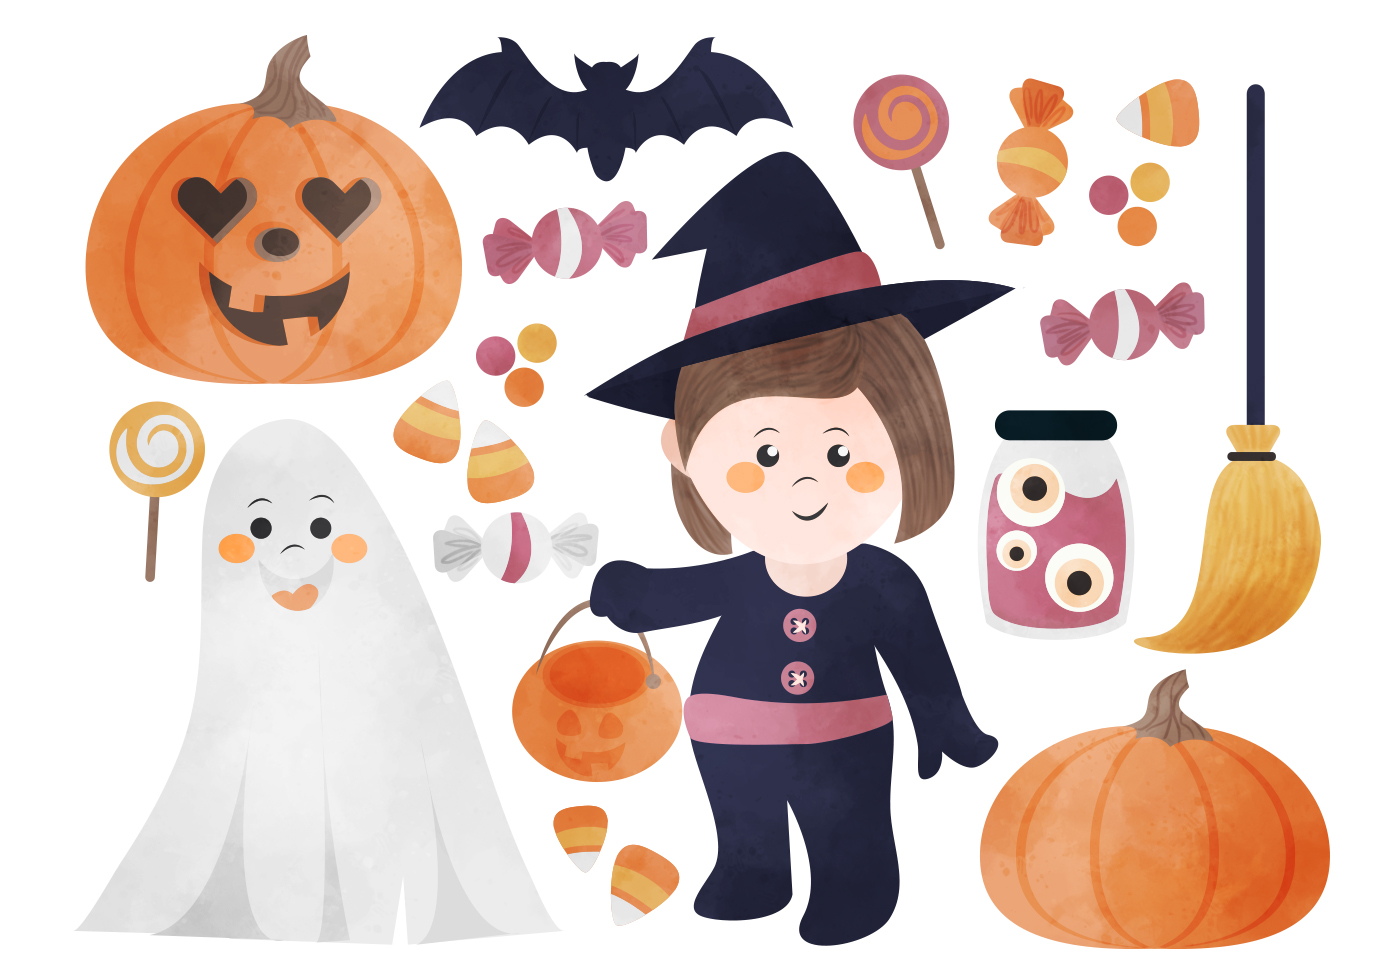 cute halloween elements - free photoshop brushes at brusheezy!